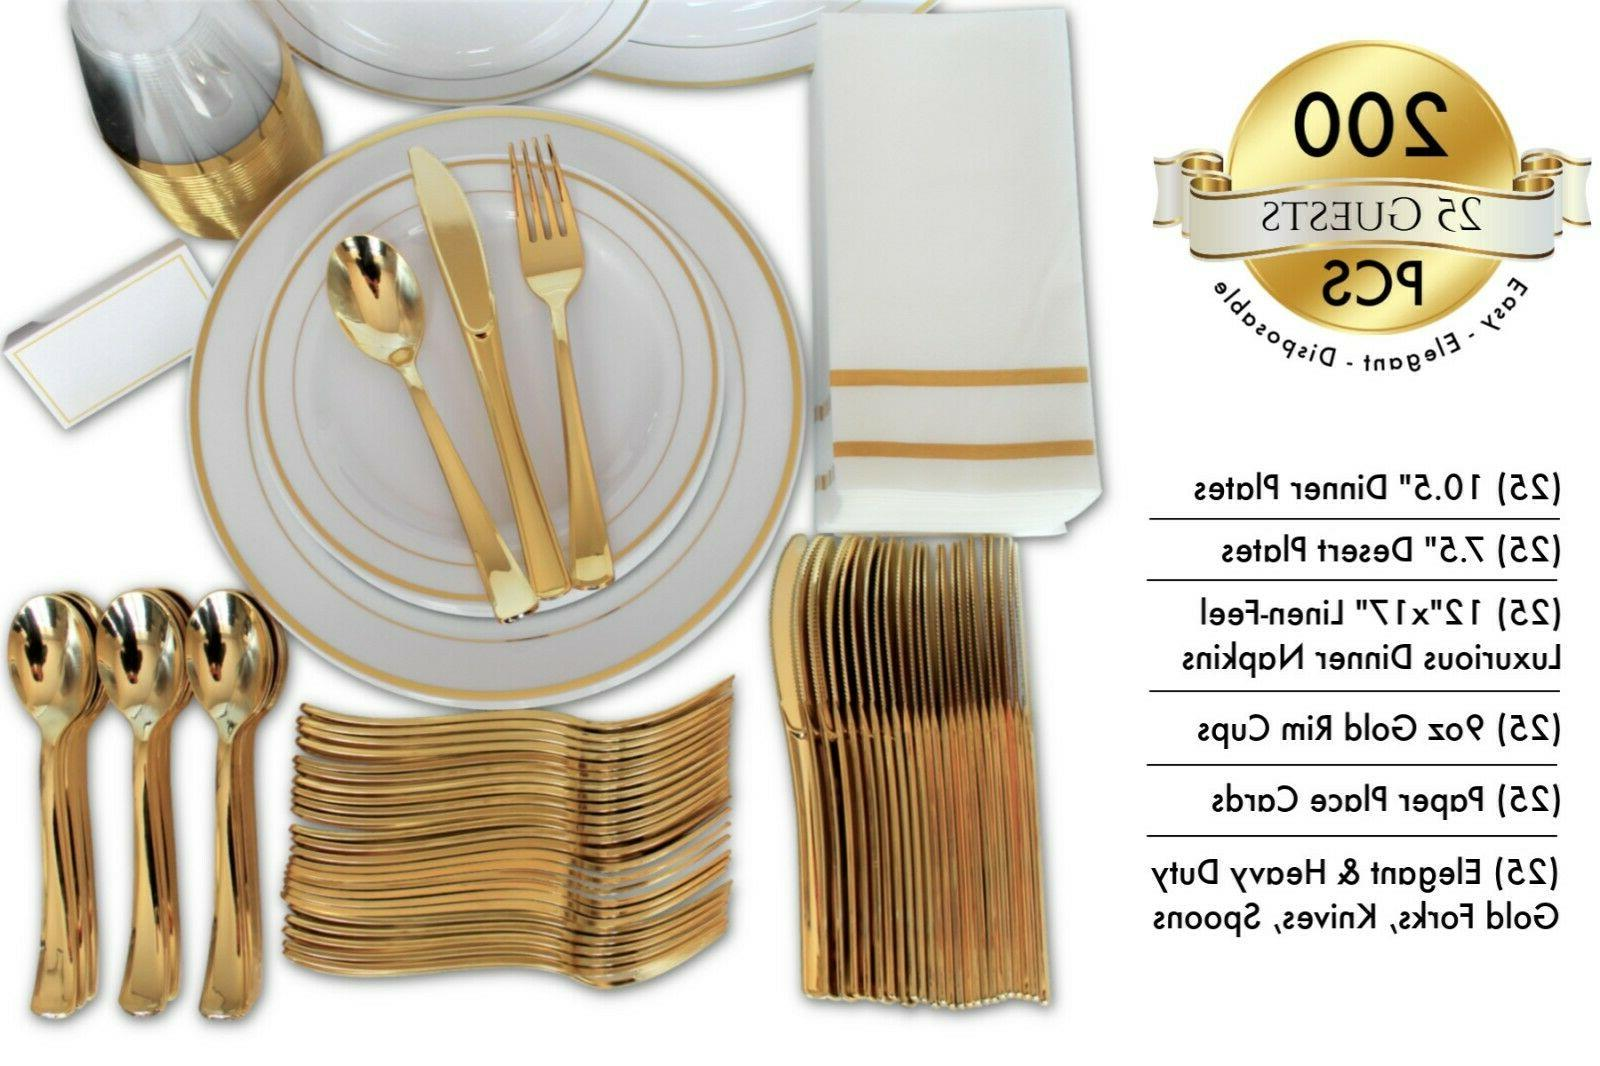 200 Gold Disposable Plates Guests